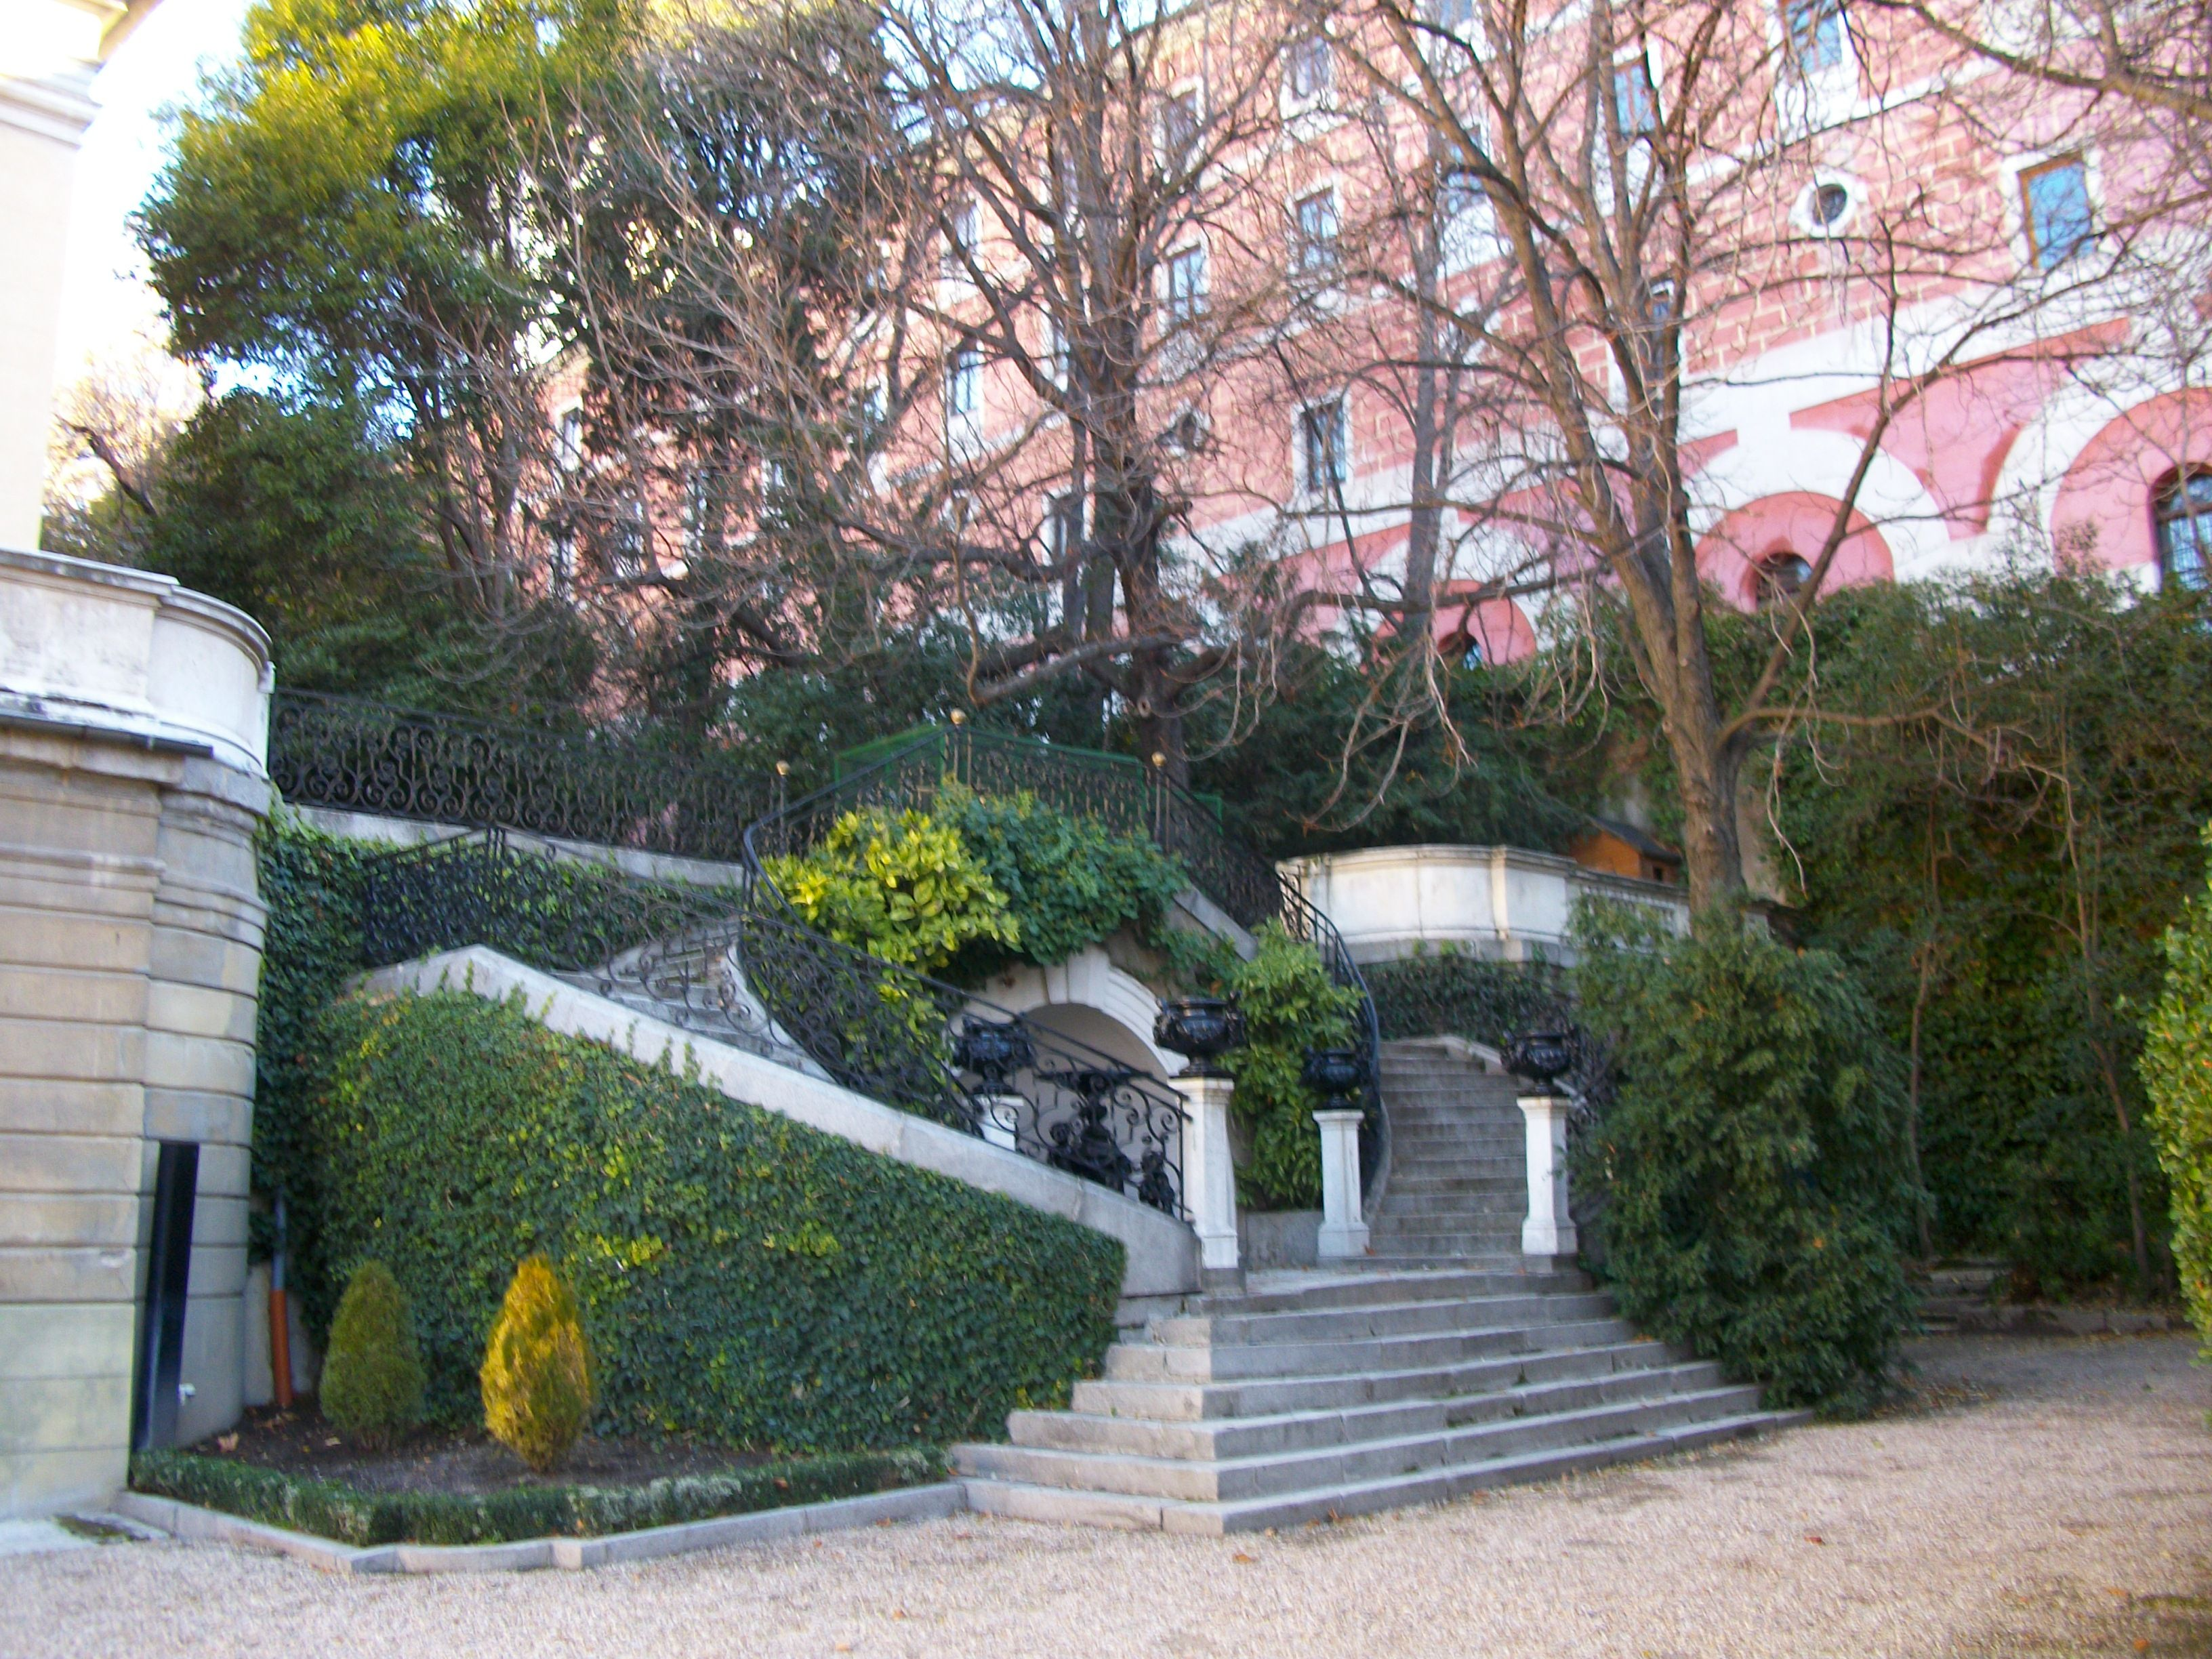 Corner Liria Palace gardens designed as a peculiar graveyard for family pets Alba